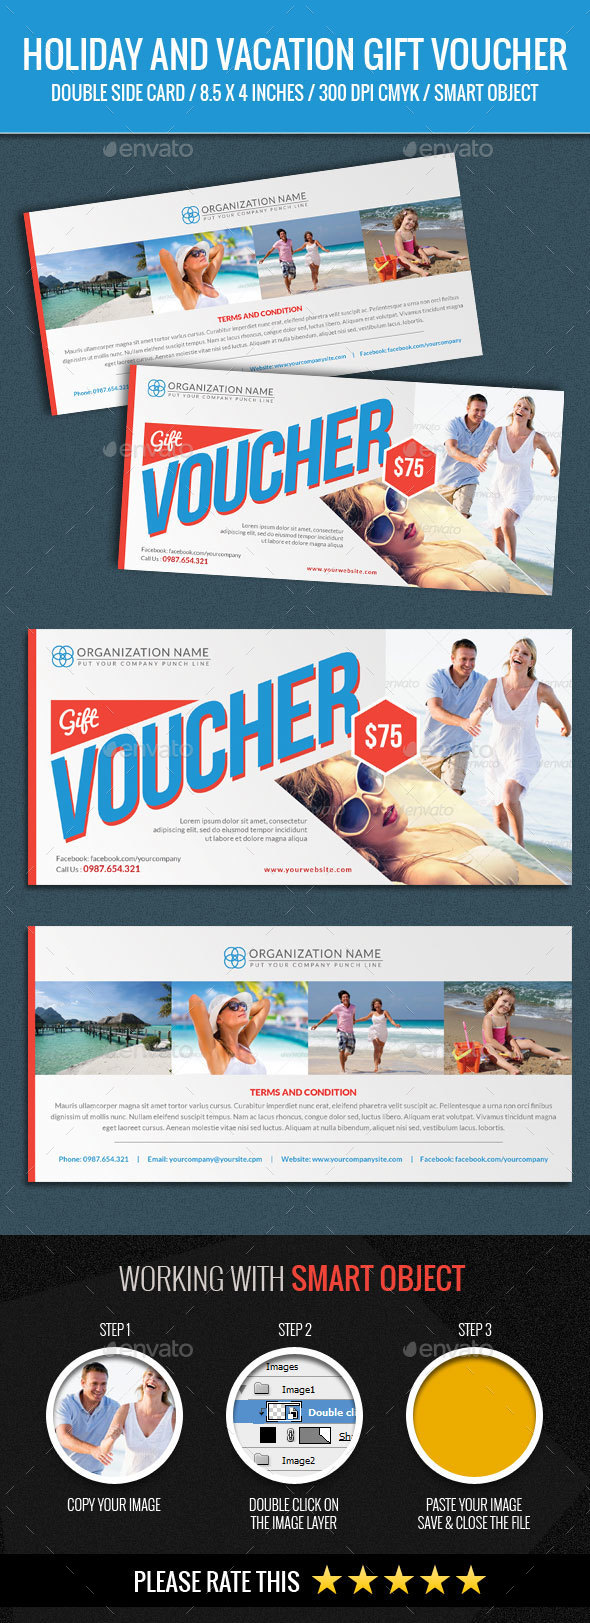 Holiday and Vacation Gift Voucher - Loyalty Cards Cards & Invites